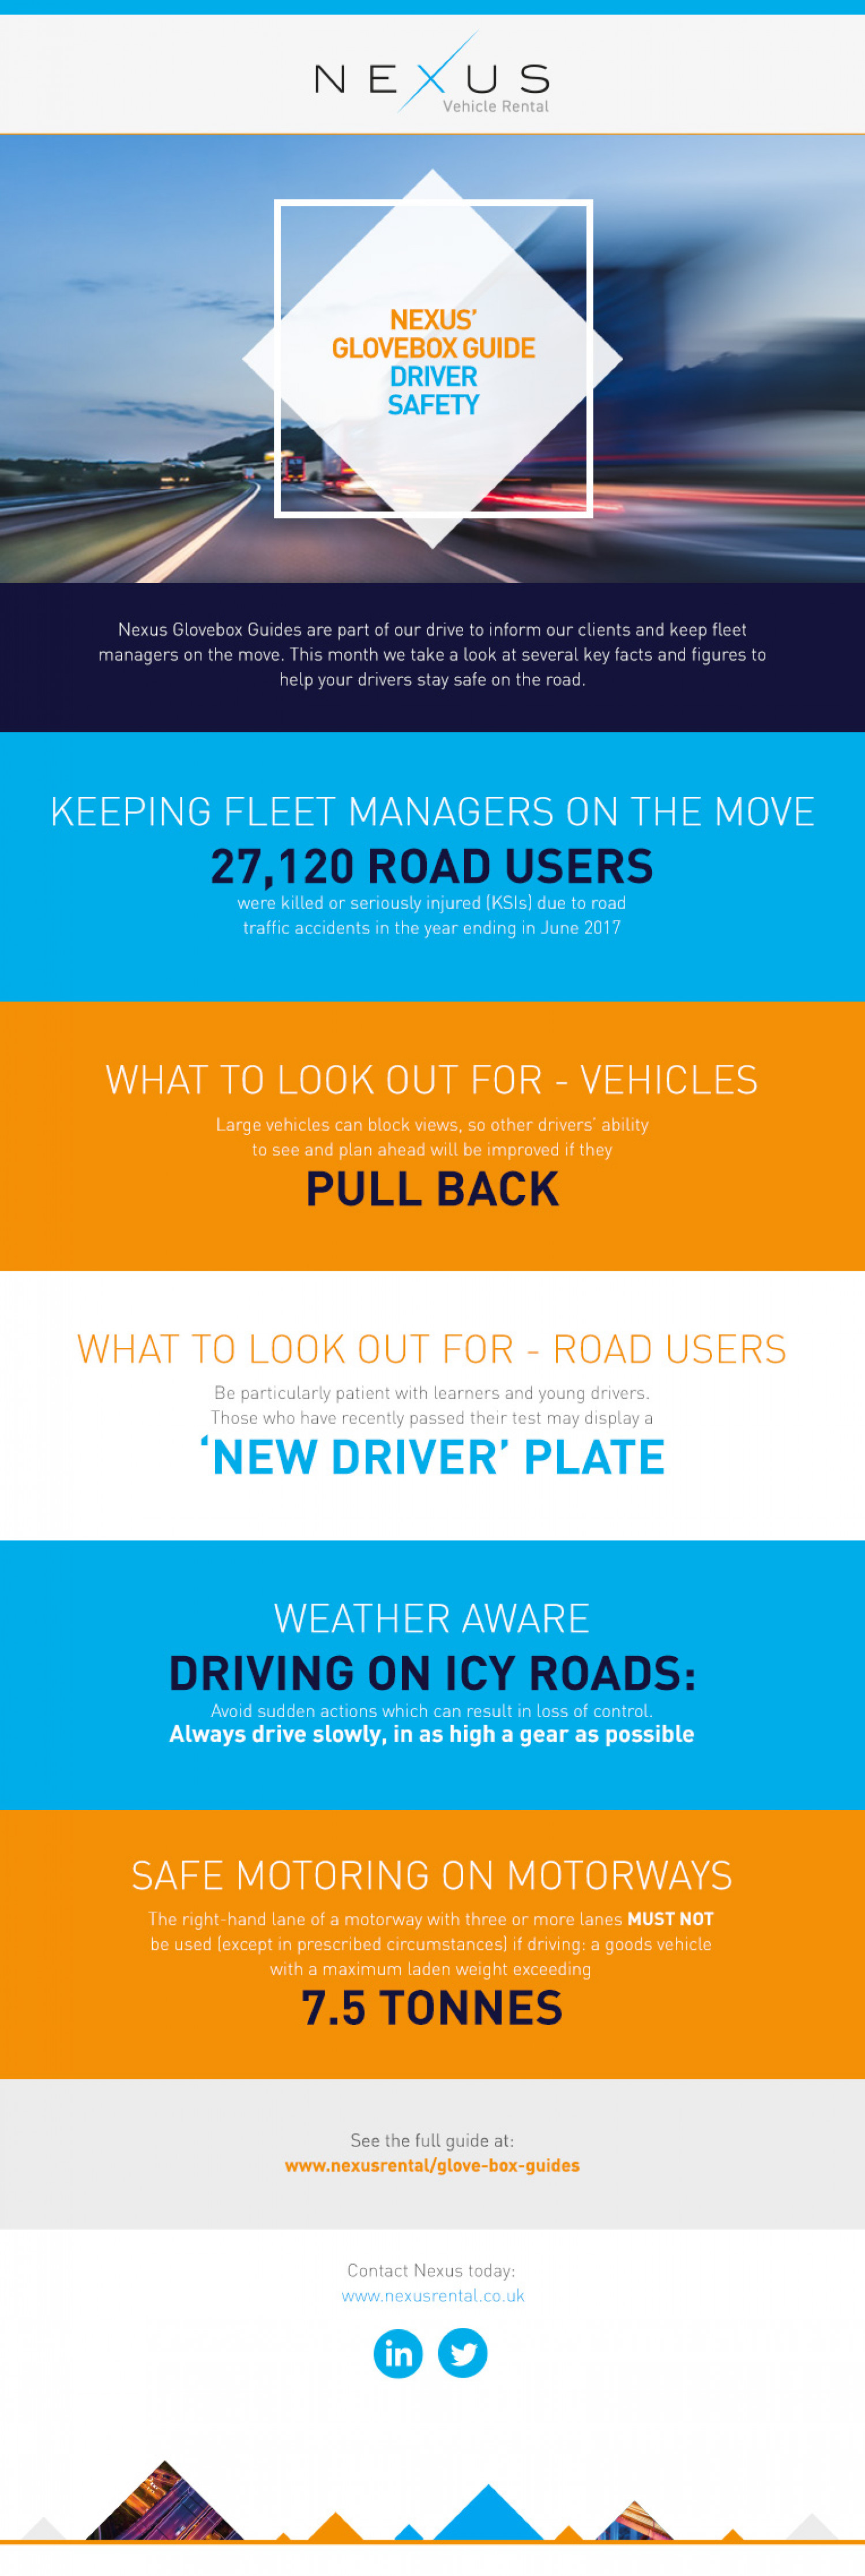 Nexus' Glovebox Guide: Driver Safety Infographic